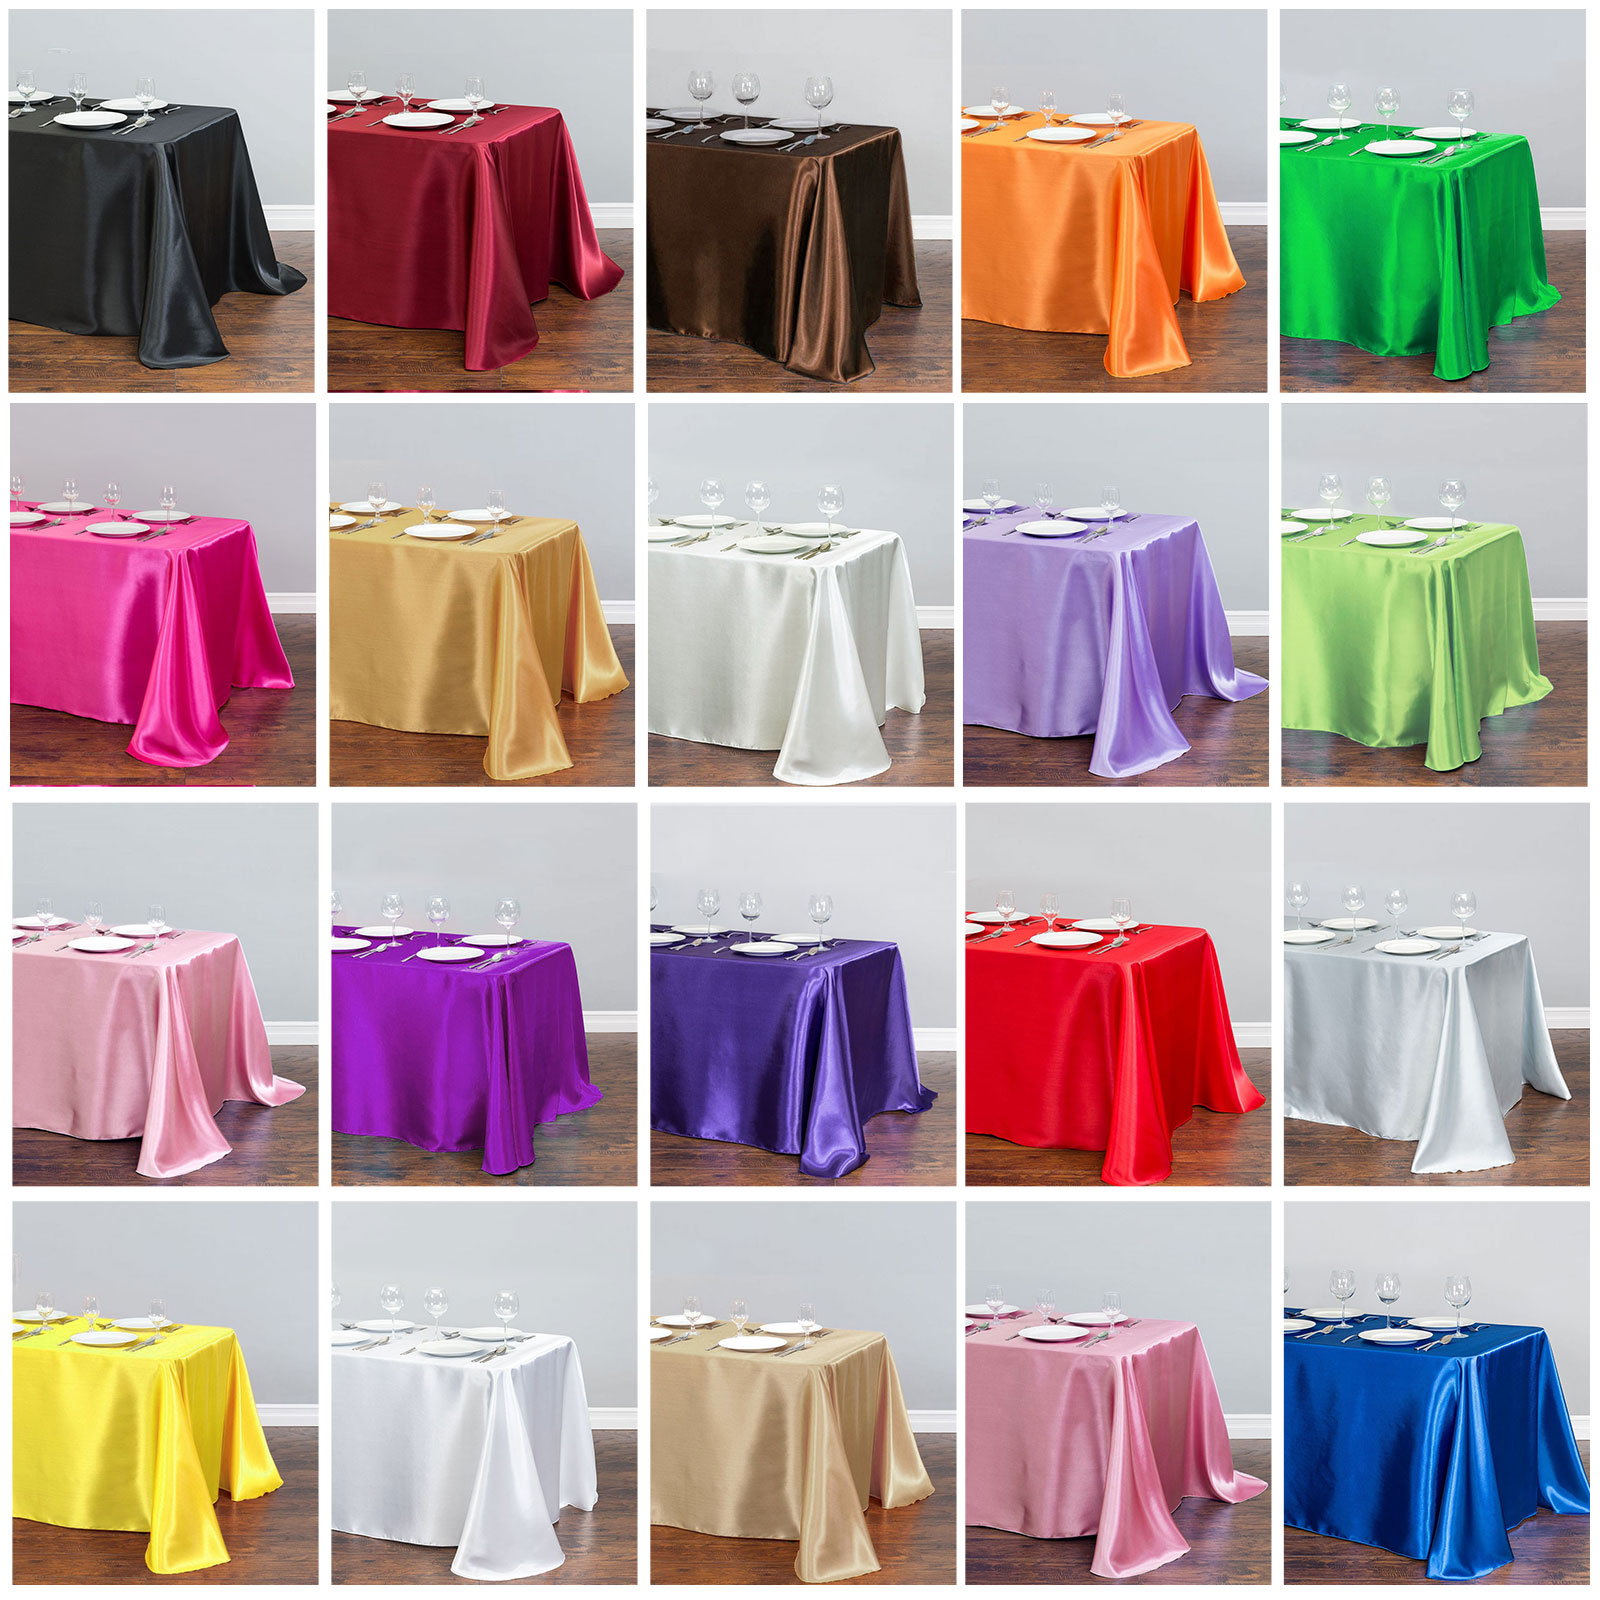 1pcs Satin Tablecloth Rectangular Hotel Banquet Table Cloth For Wedding Party Christmas Table Cover Home Decoration